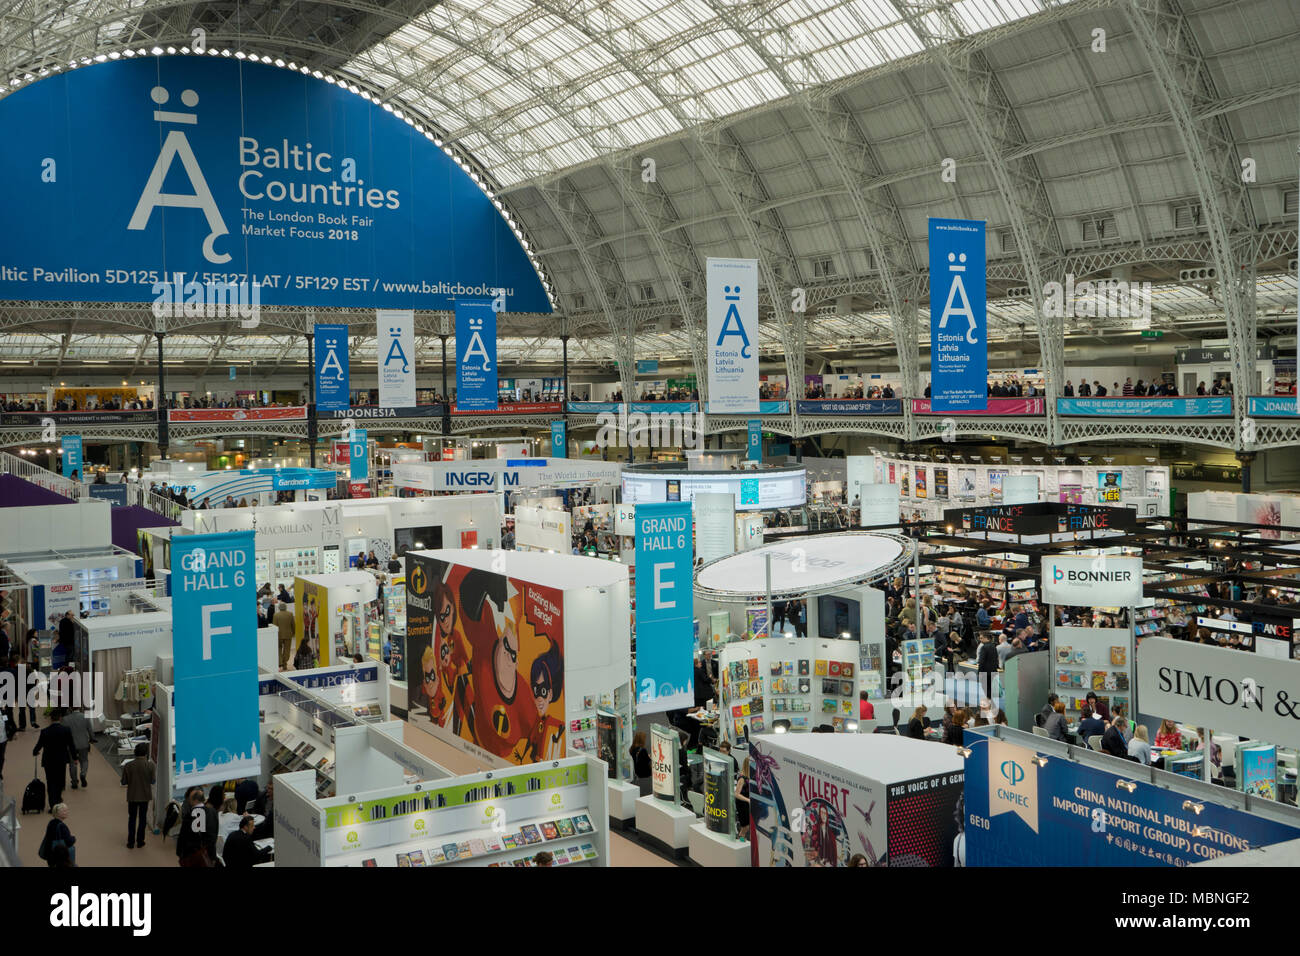 London,UK.10th April 2018. Exhibitors and visitors at the London Book Fair 2018 at the Olympia Exhibition Centre. London. Stock Photo